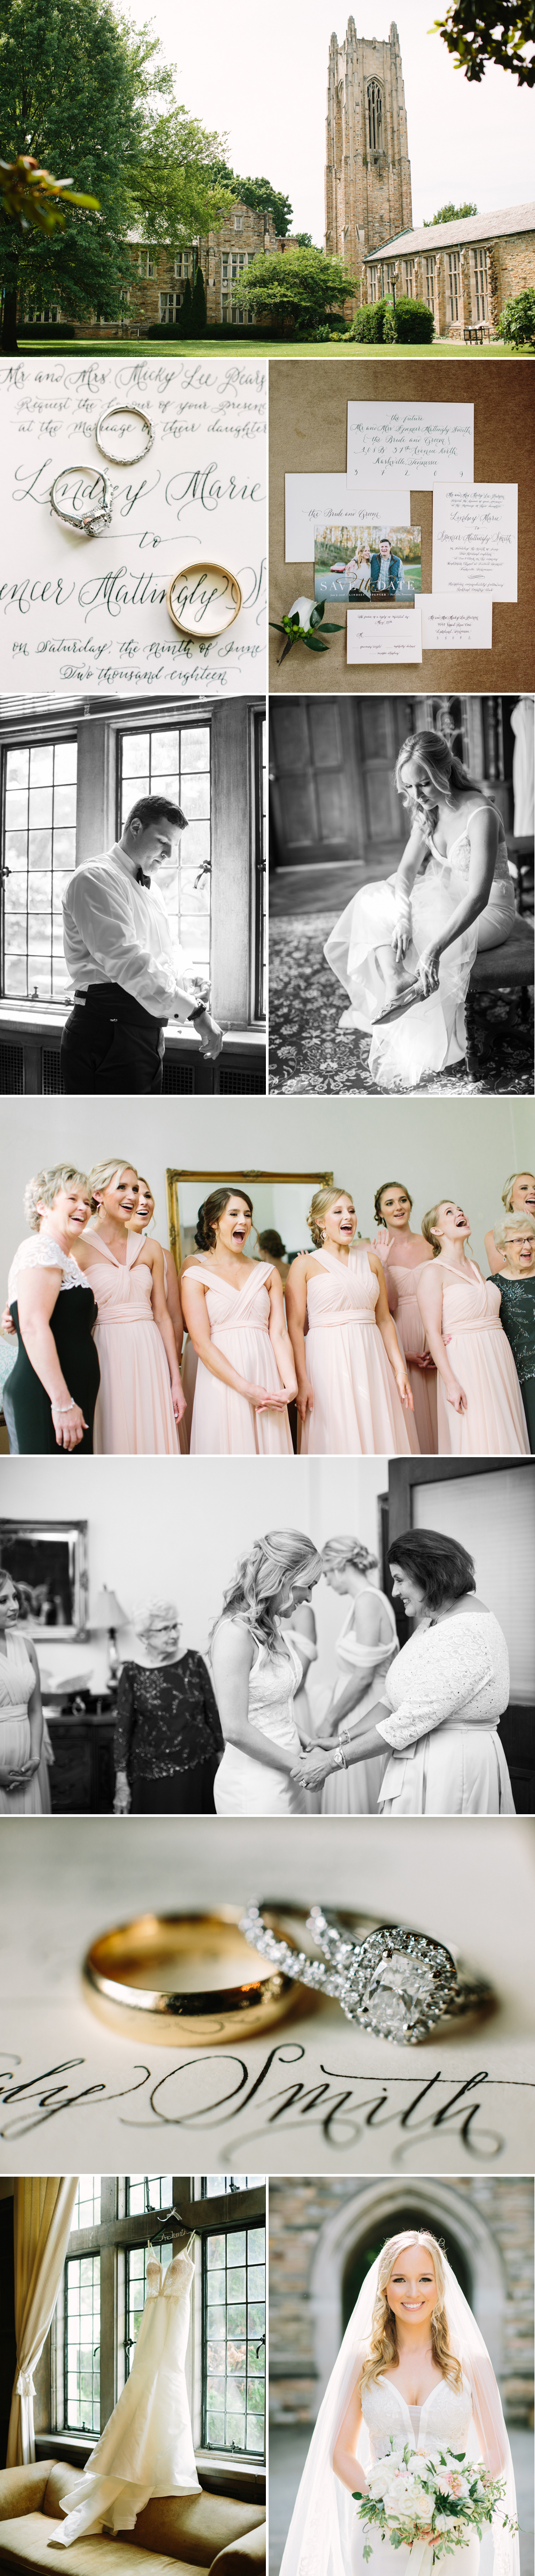 Nashville_Wedding_Photographer_Rachel_Moore.jpg